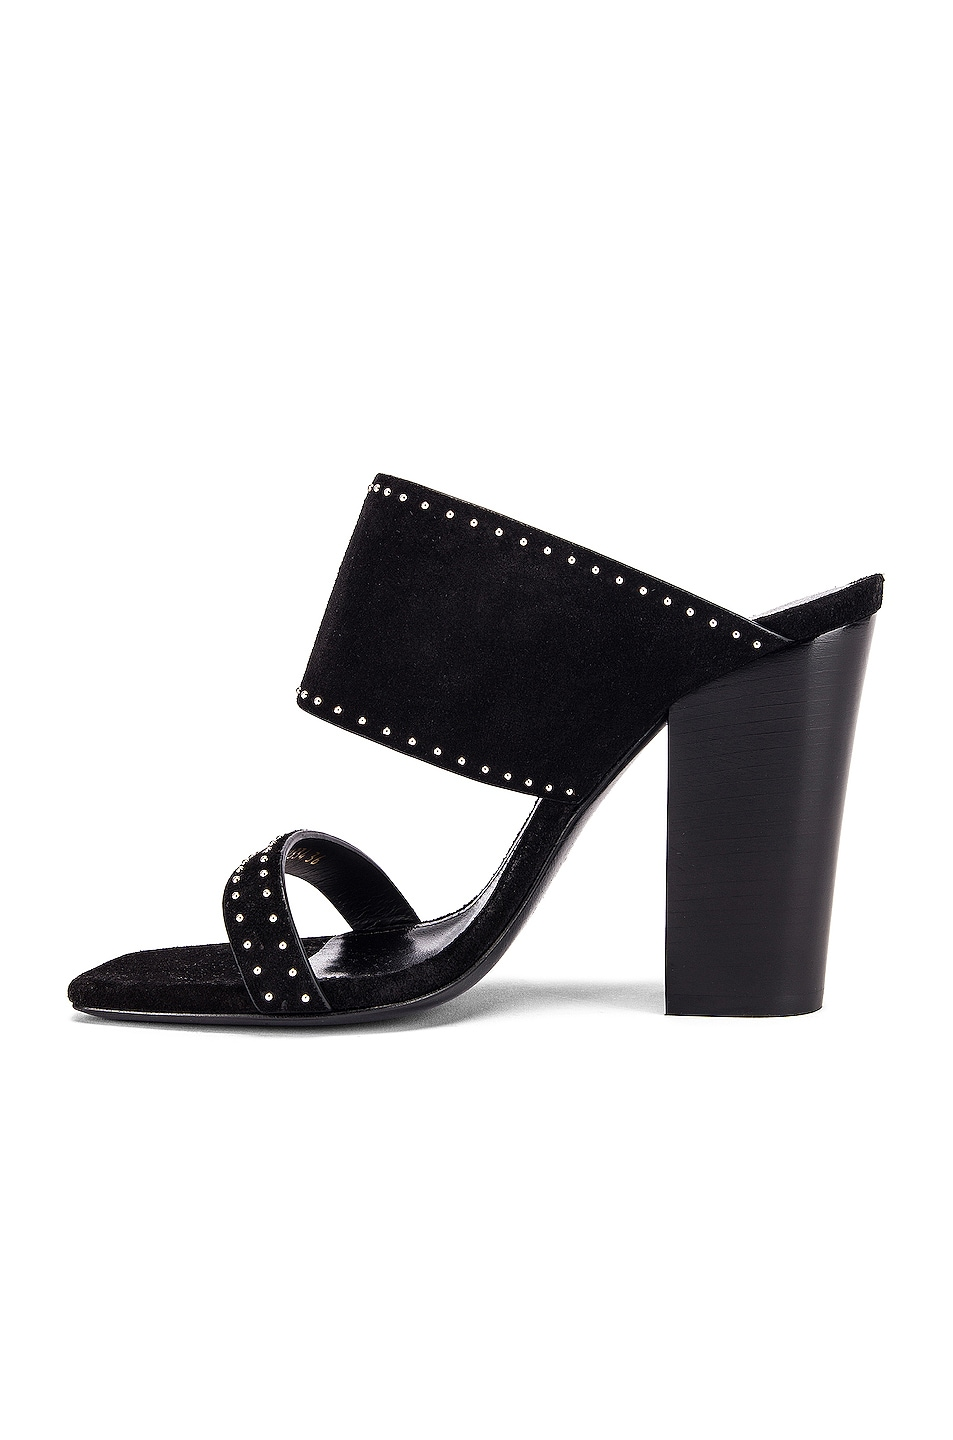 Image 5 of Saint Laurent Oak Stud Sandals in Black